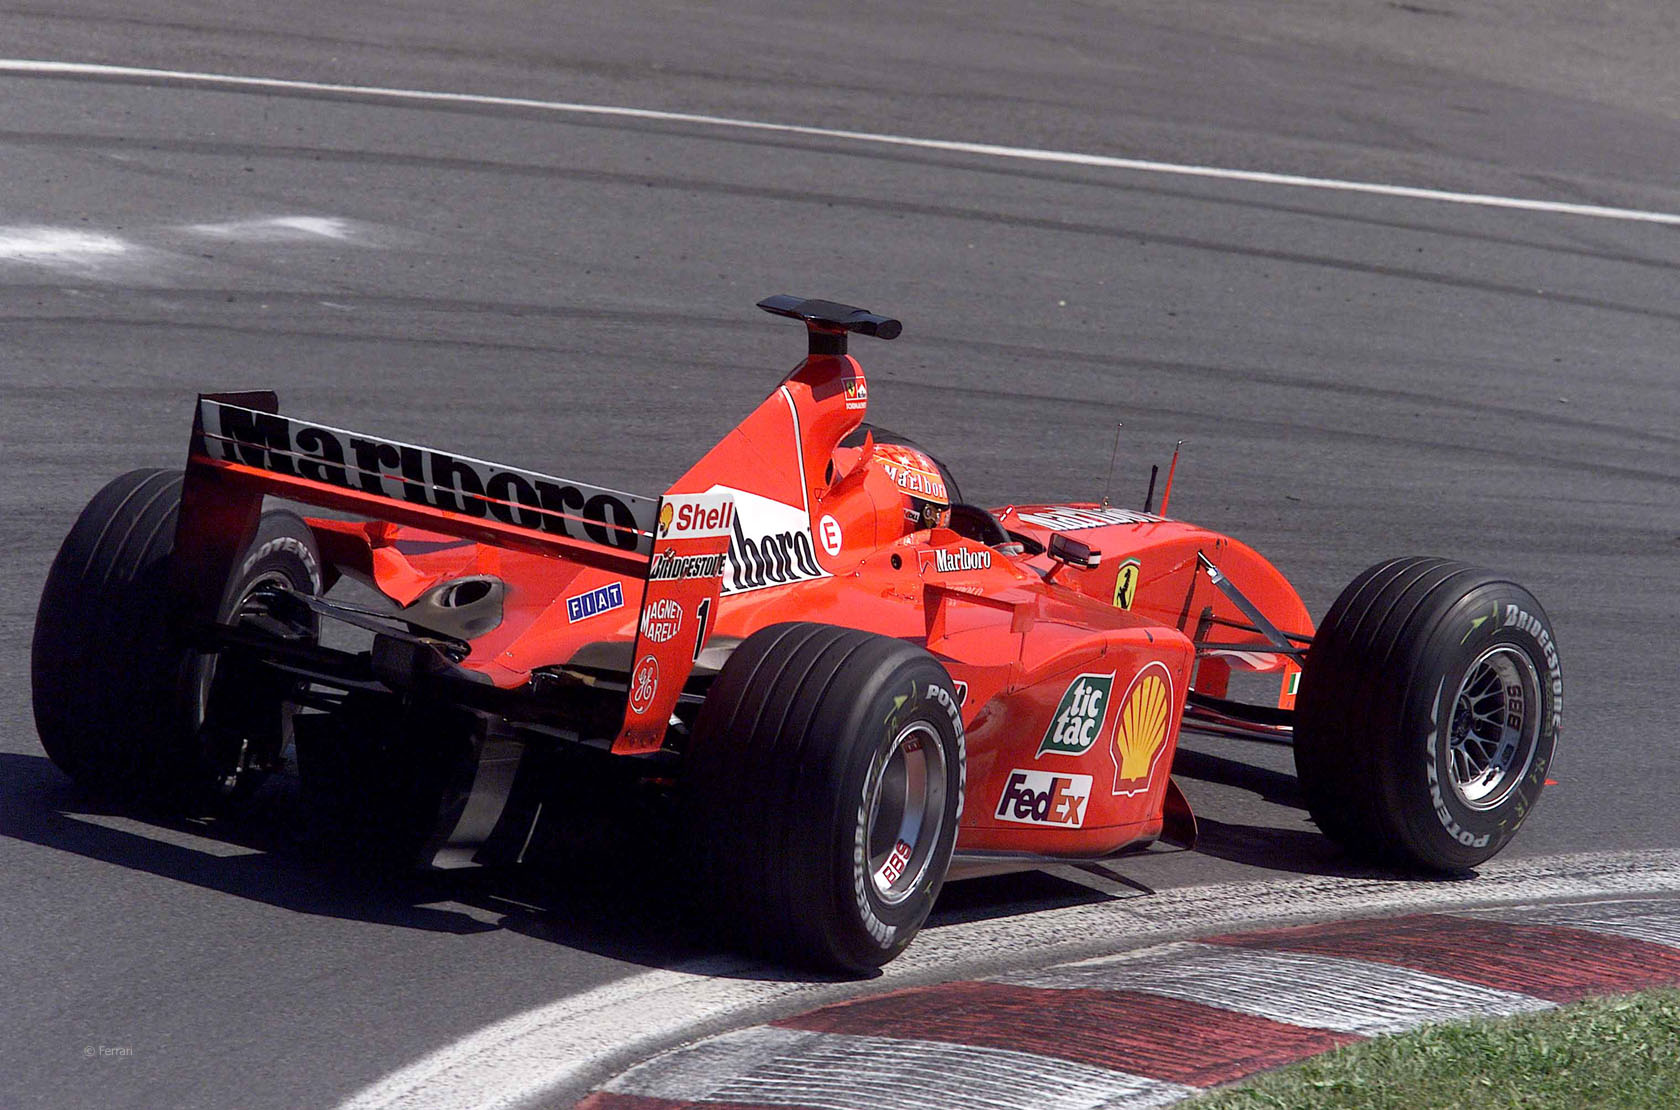 ferrari f2001 michael schumacher - photo #1